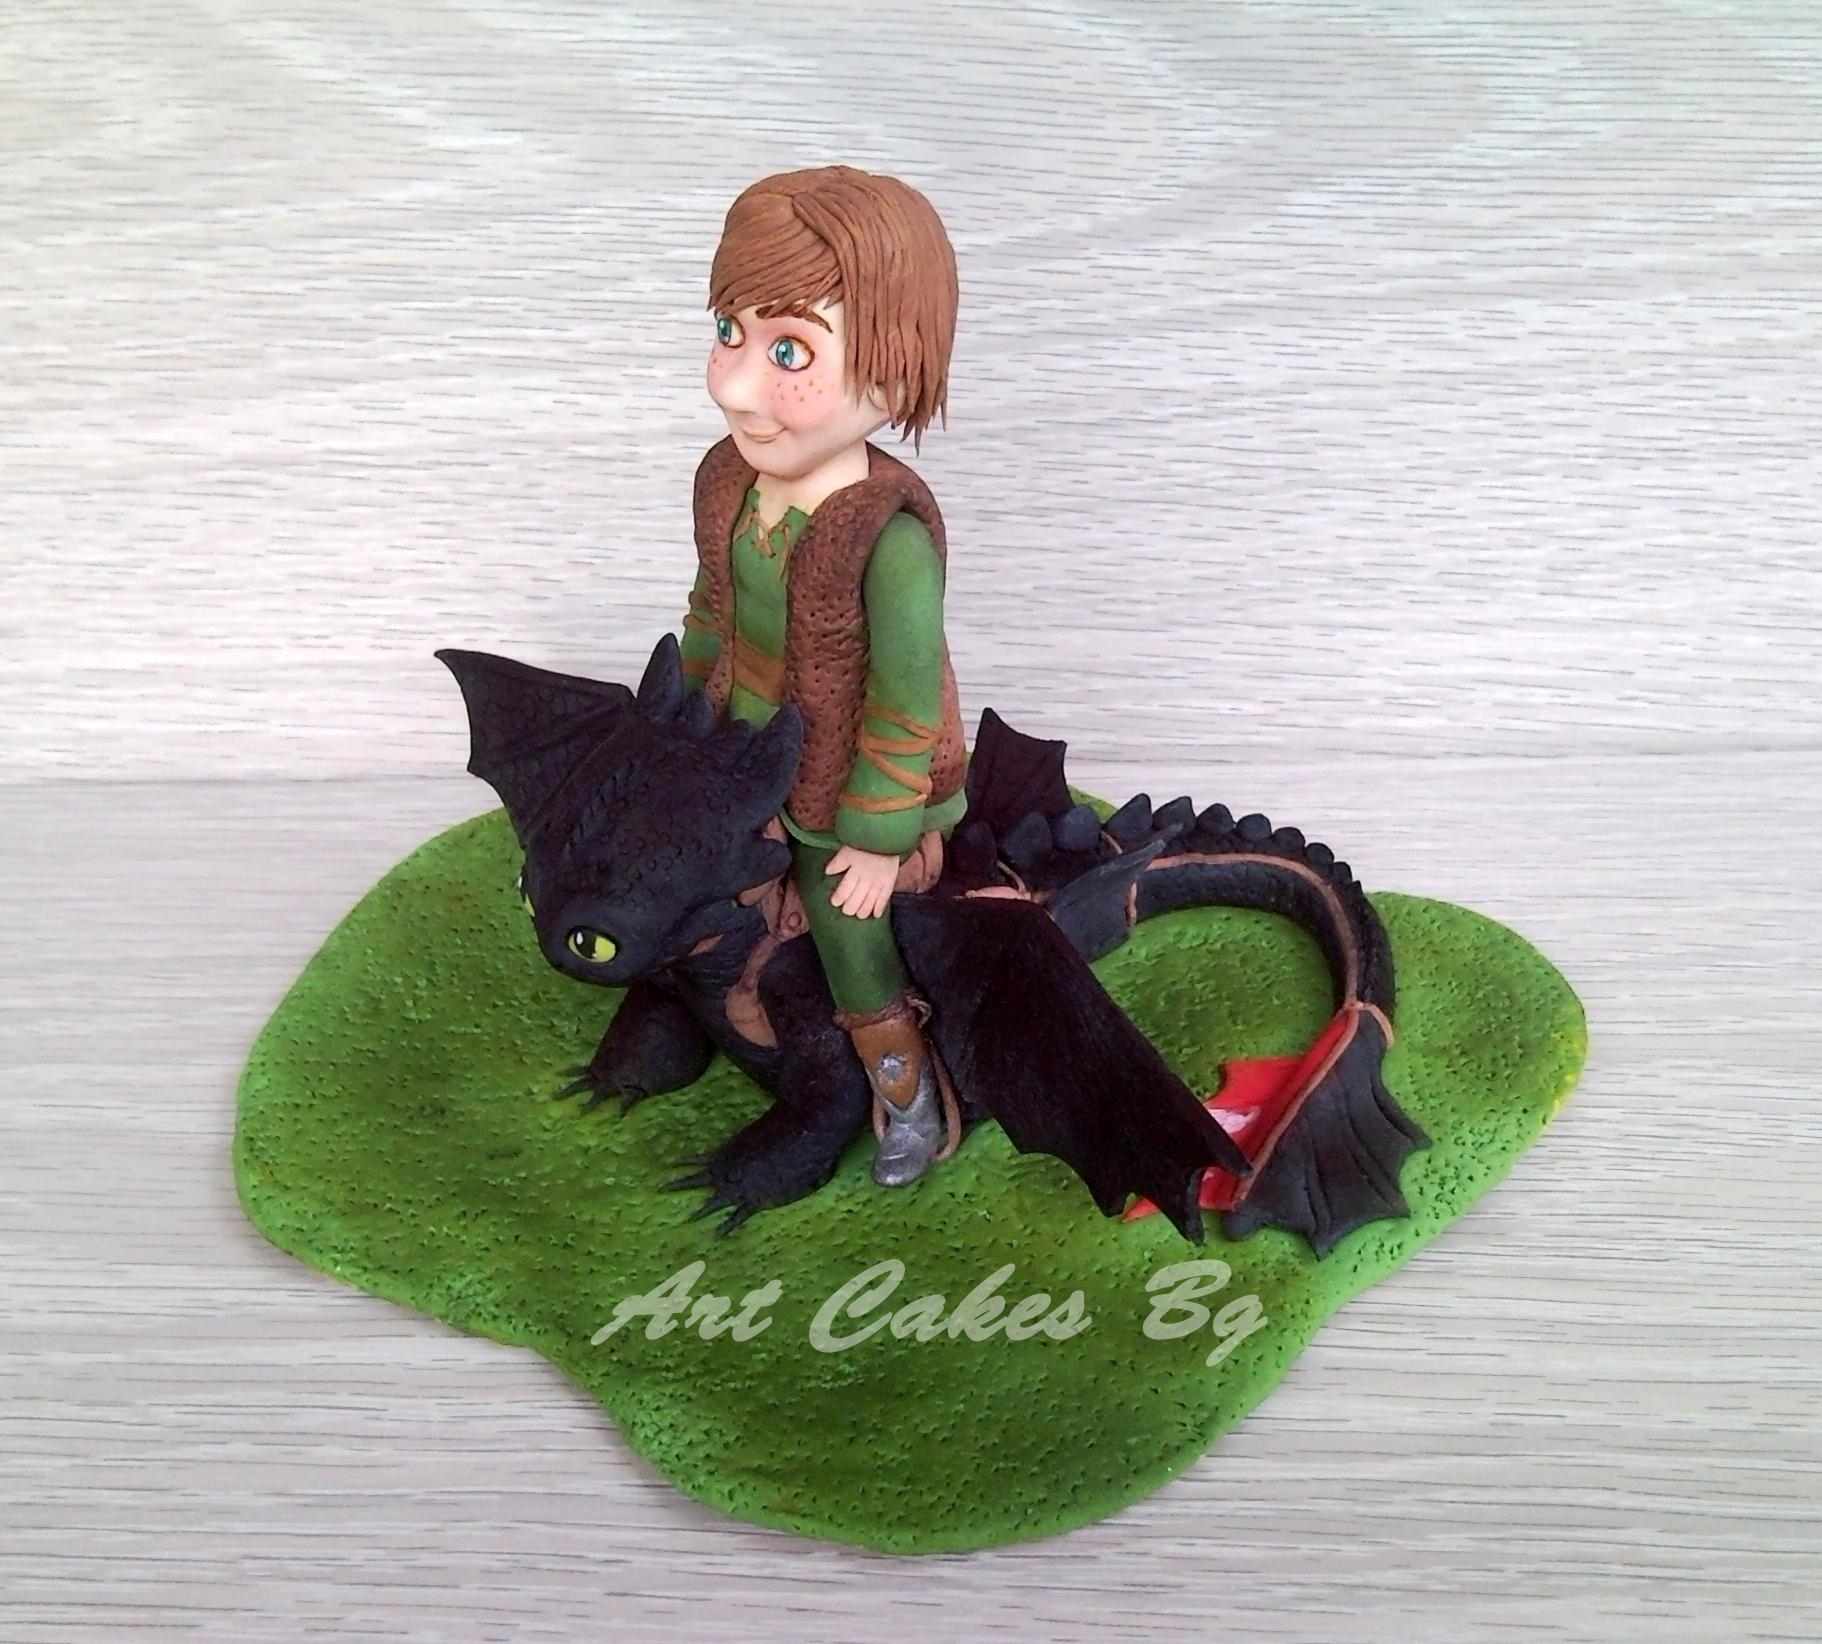 Hiccup And Toothless Cake Topper - CakeCentral.com